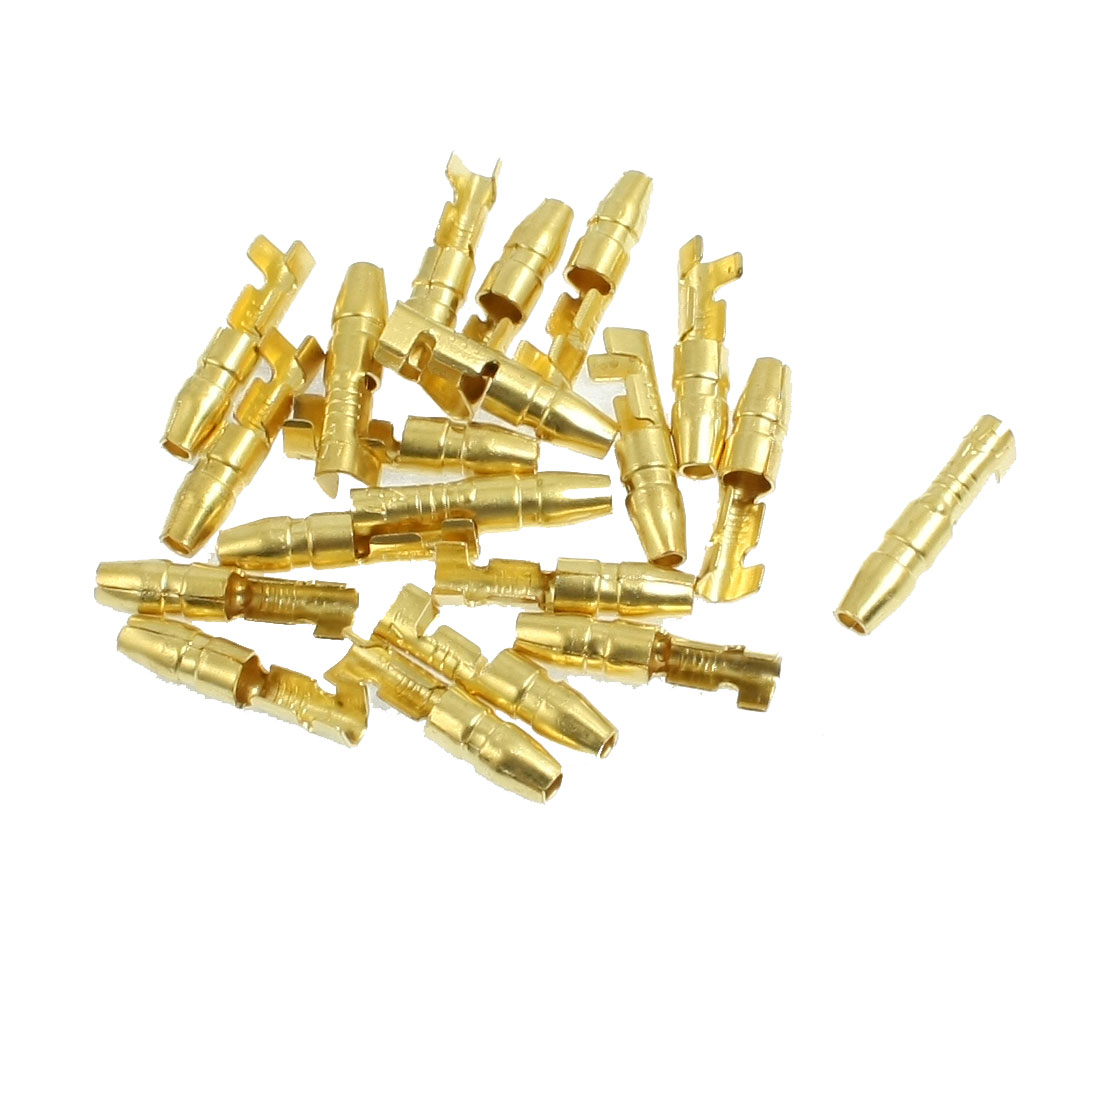 20 Pcs Gold Tone Brass Male Crimp Terminals Pin 4mm Wiring Connectors